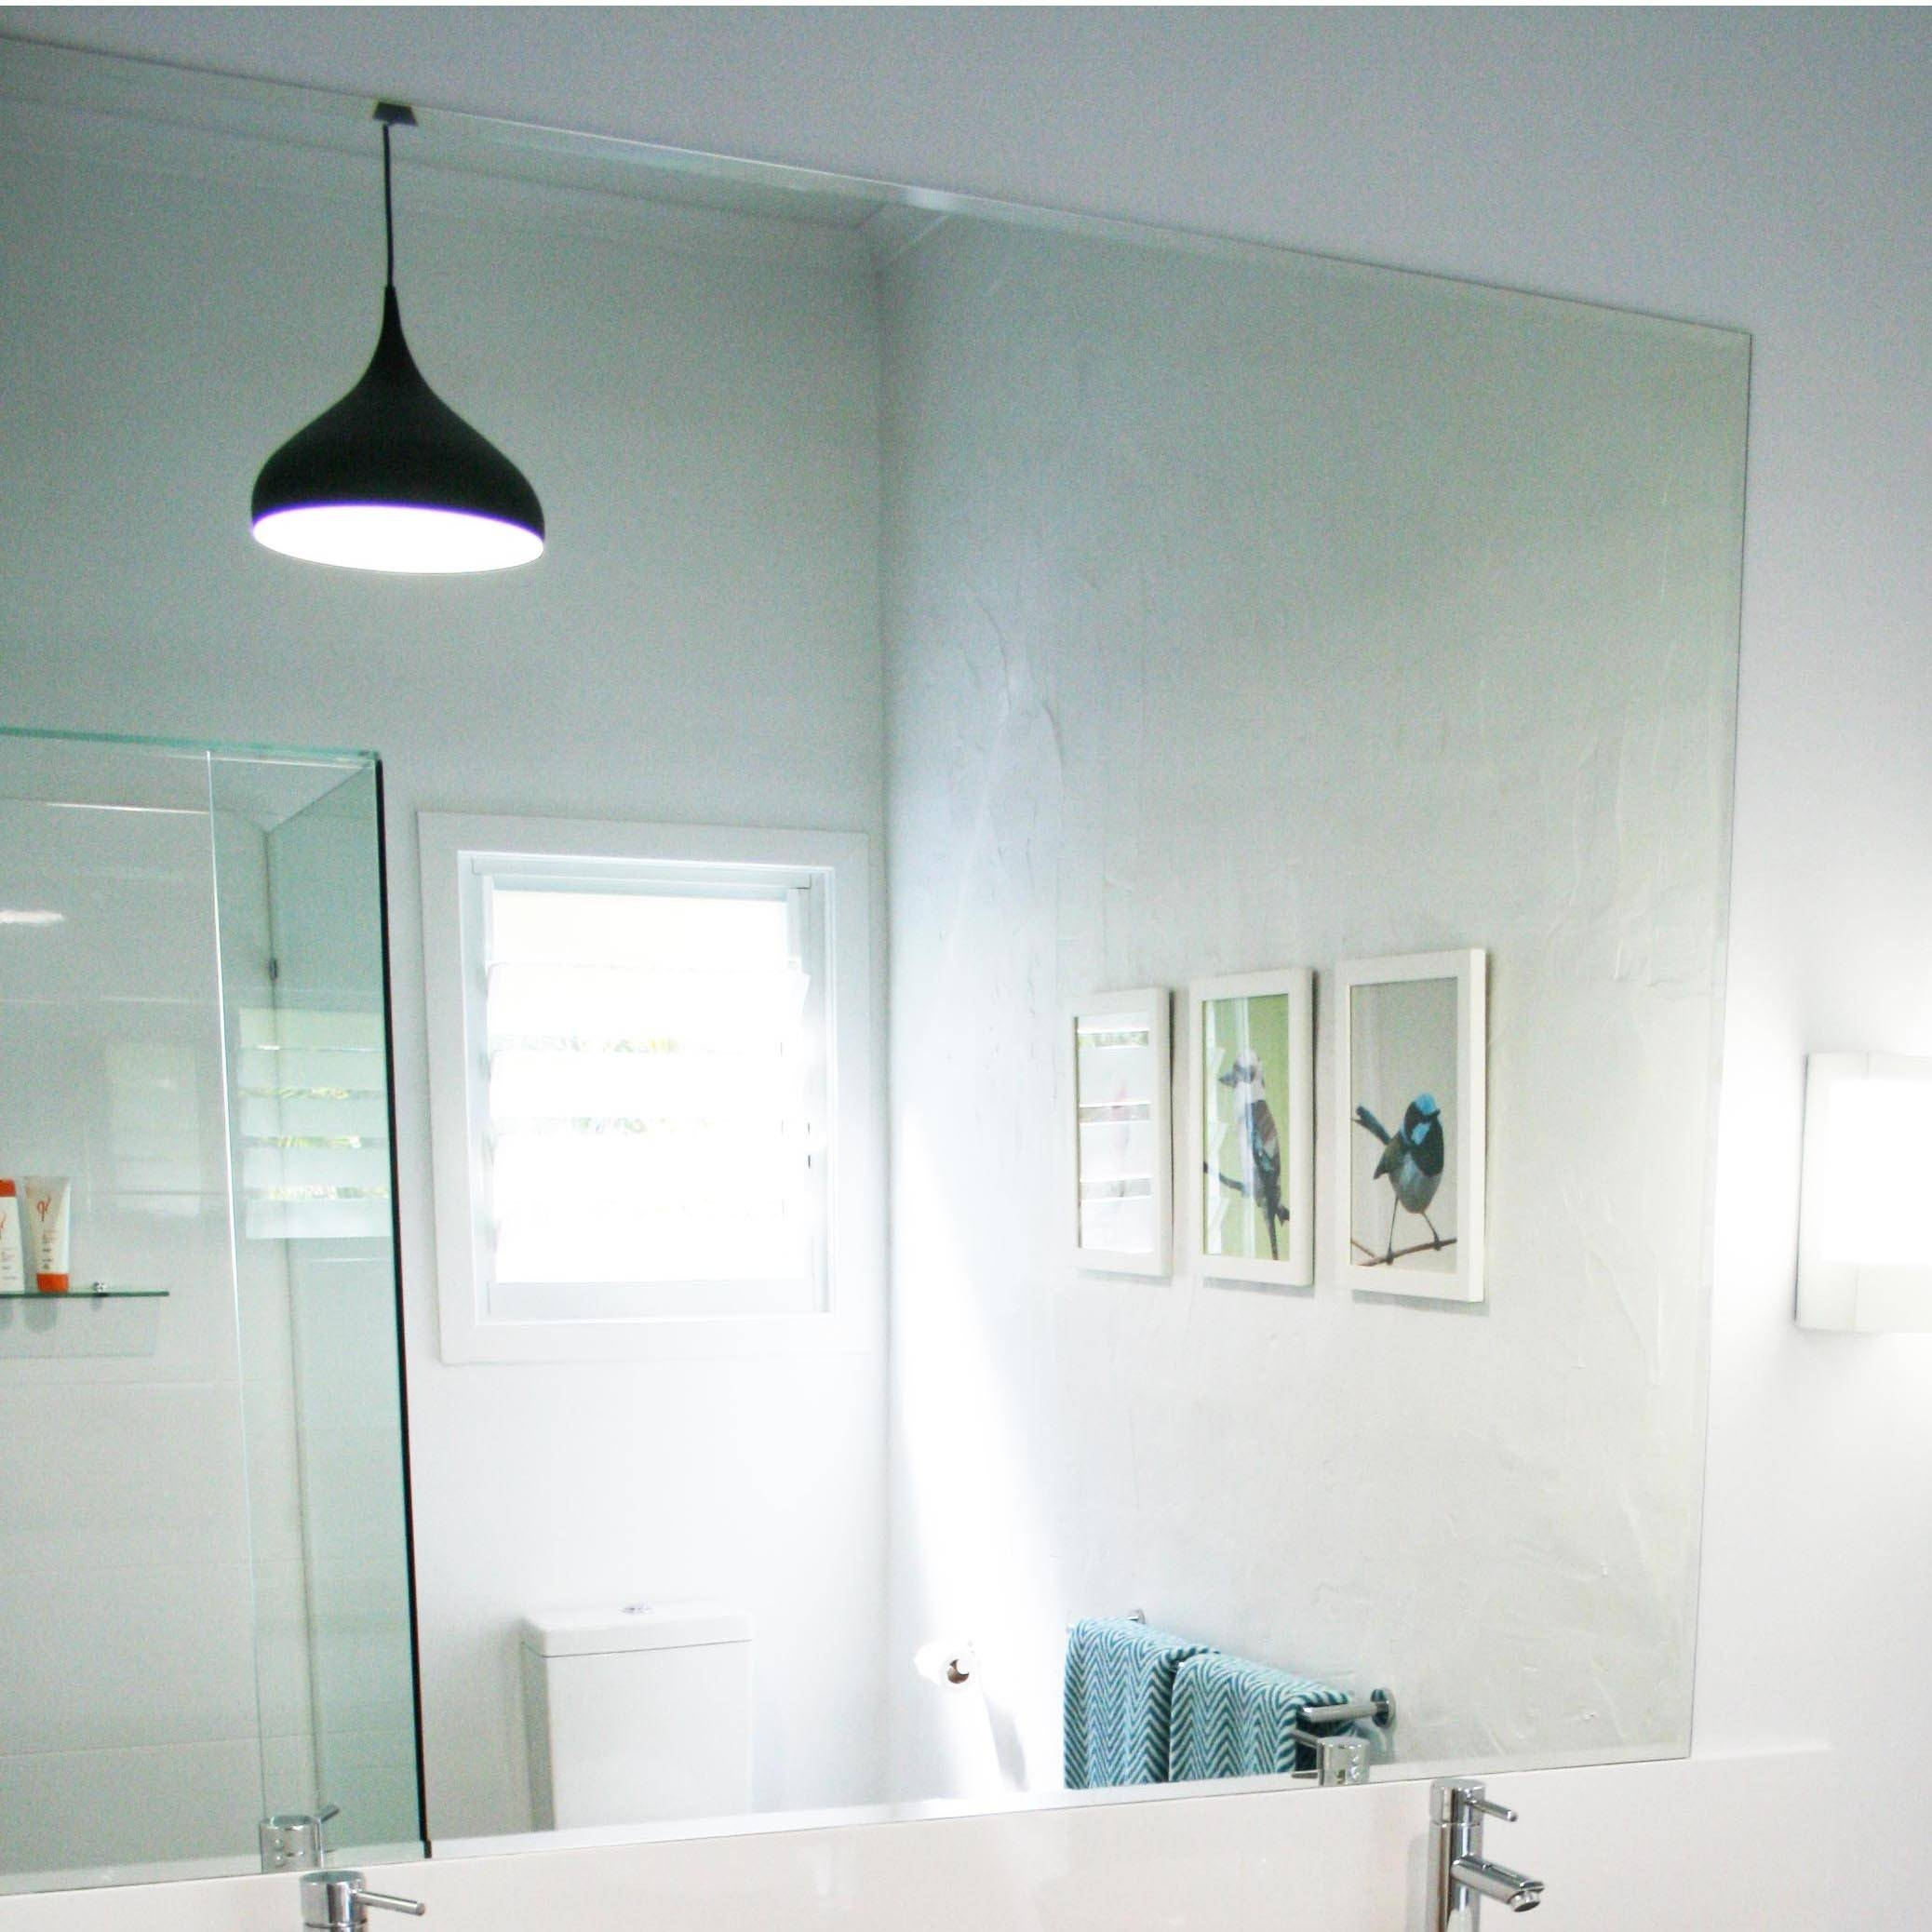 Reflekta Bevelled Edge Mirror 1500X1200Mm | Highgrove Bathrooms regarding Bevel Edged Mirrors (Image 13 of 15)